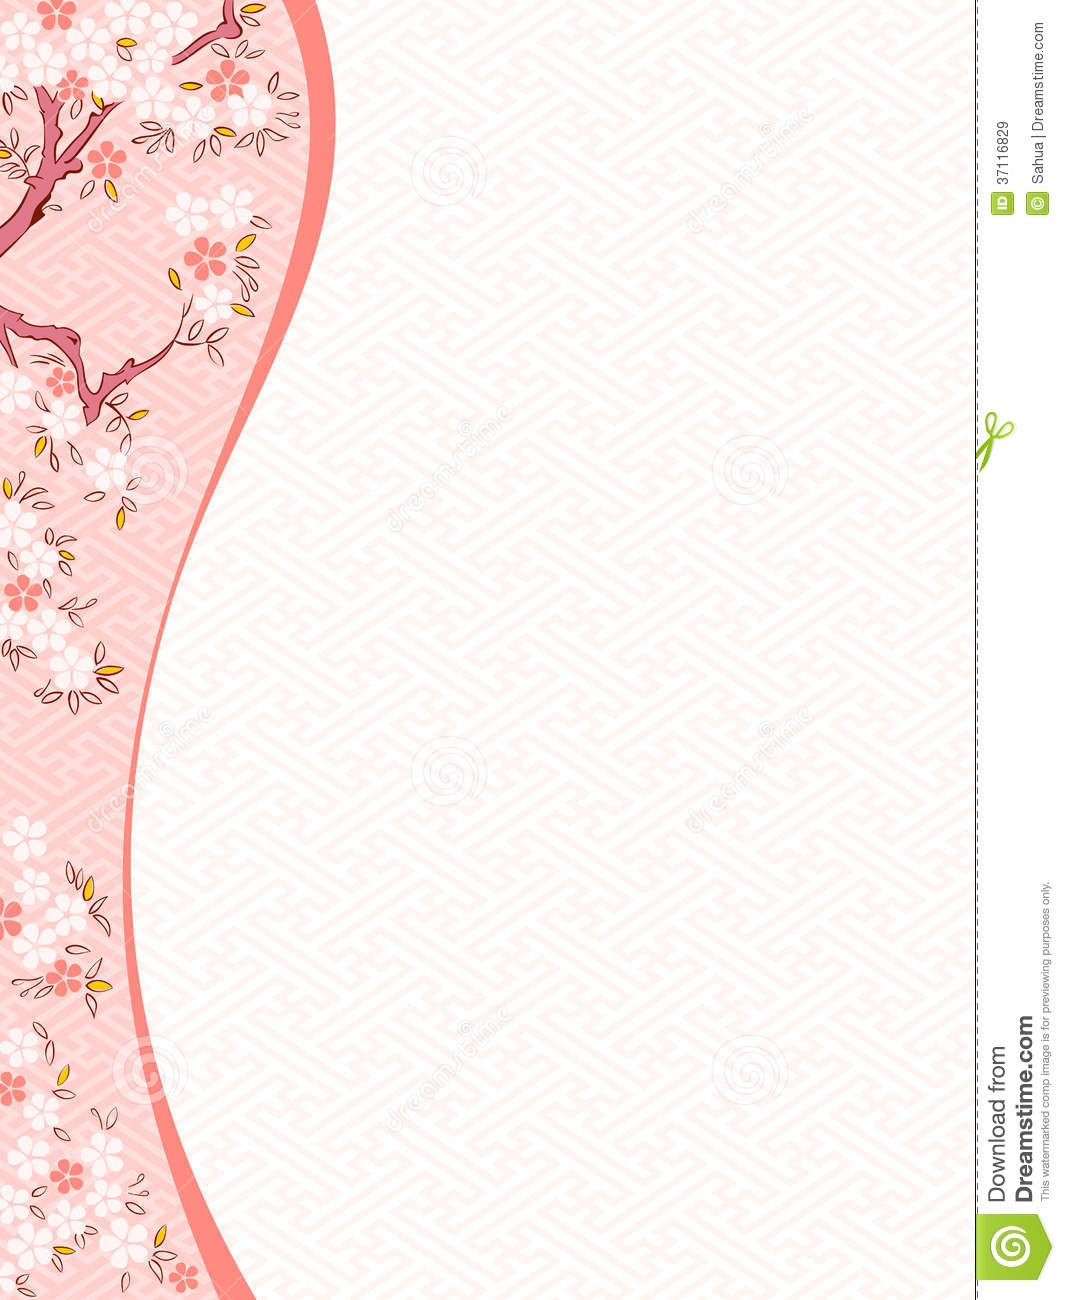 Cherry Blossom Template Royalty Free Stock Images - Image: 37116829